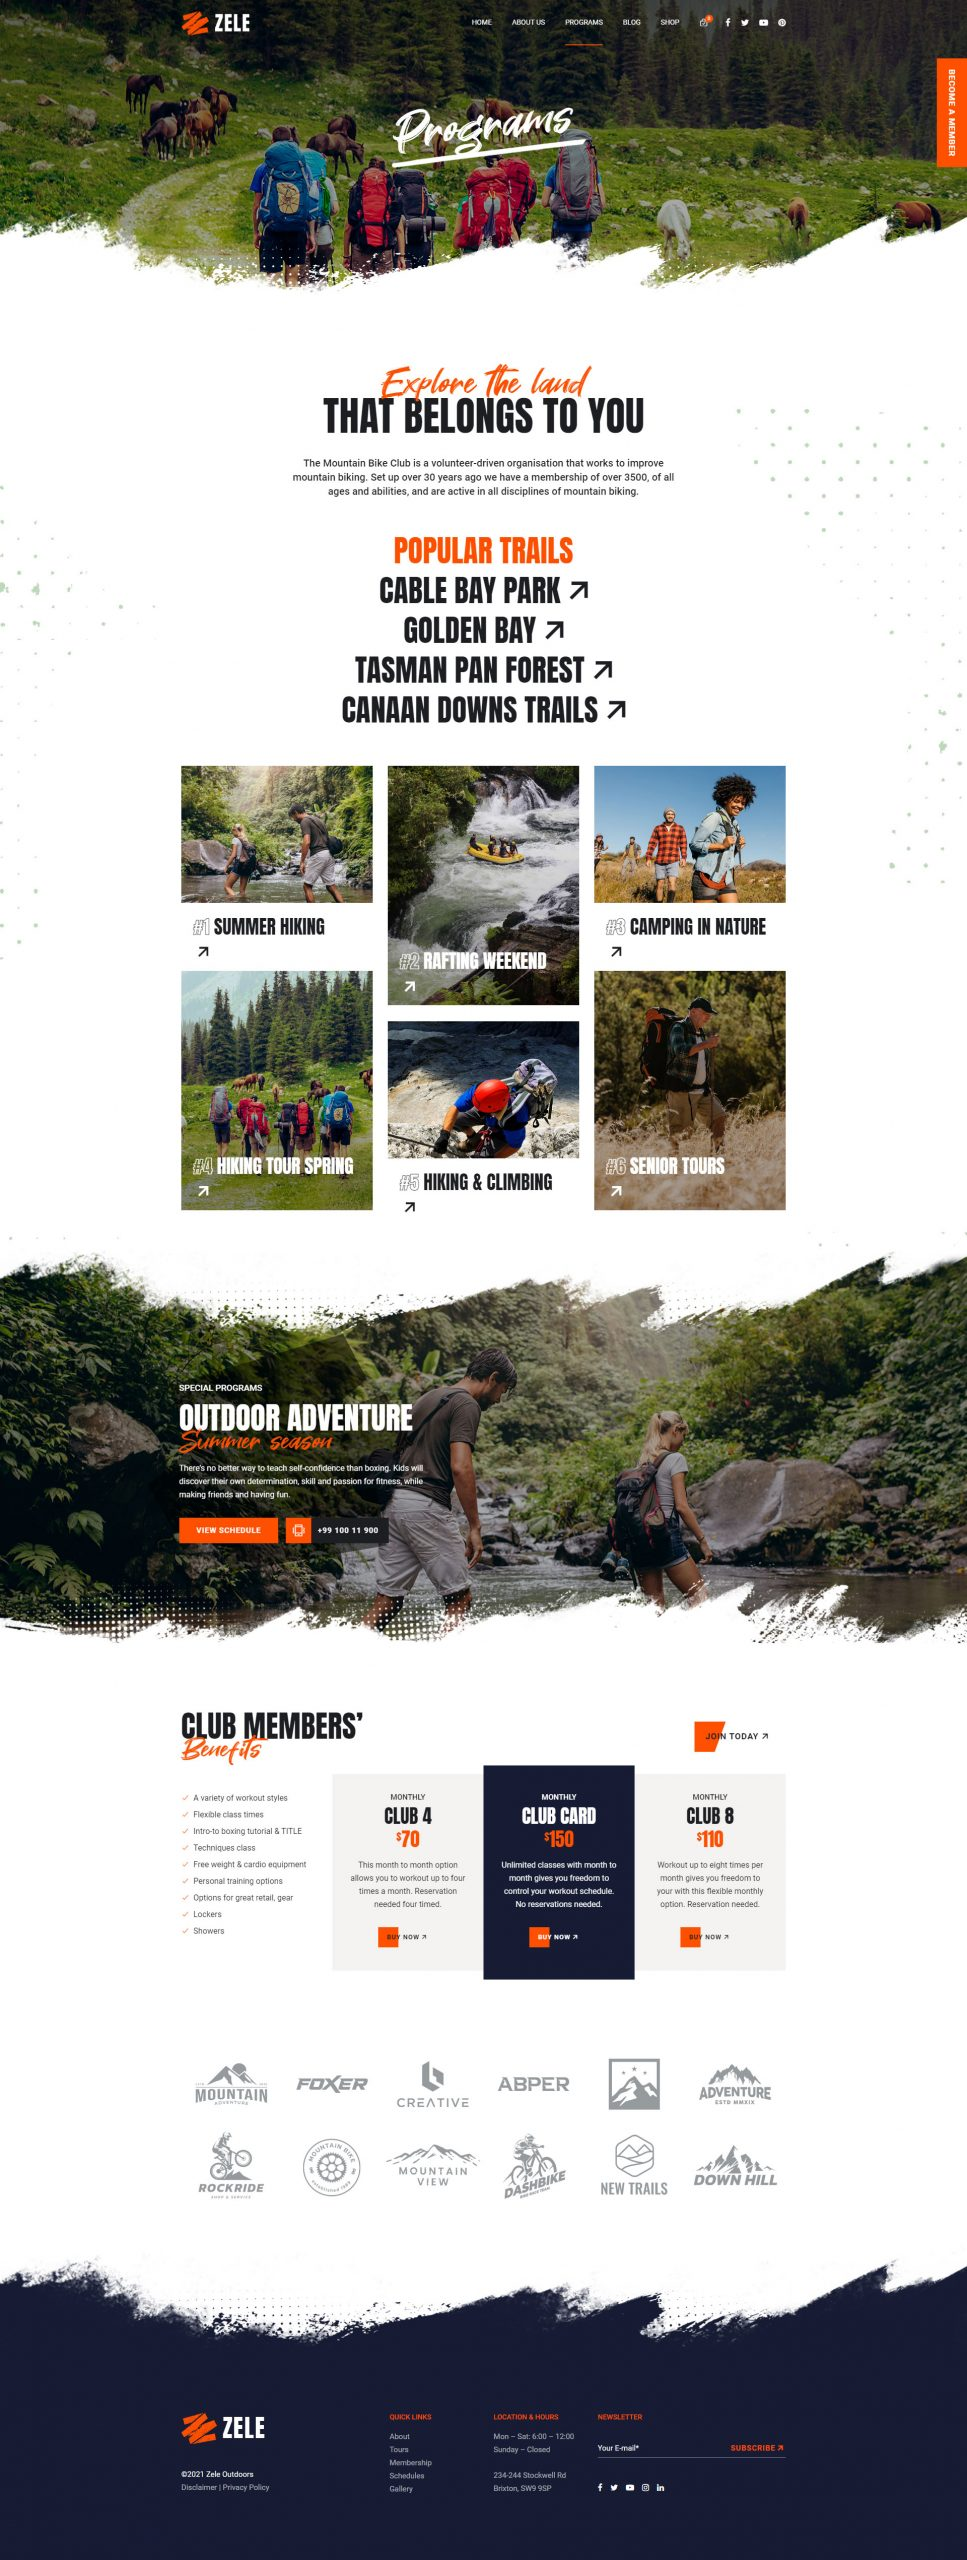 http://zele.bold-themes.com/wp-content/uploads/2021/07/Rough-Programs-scaled-1.jpg